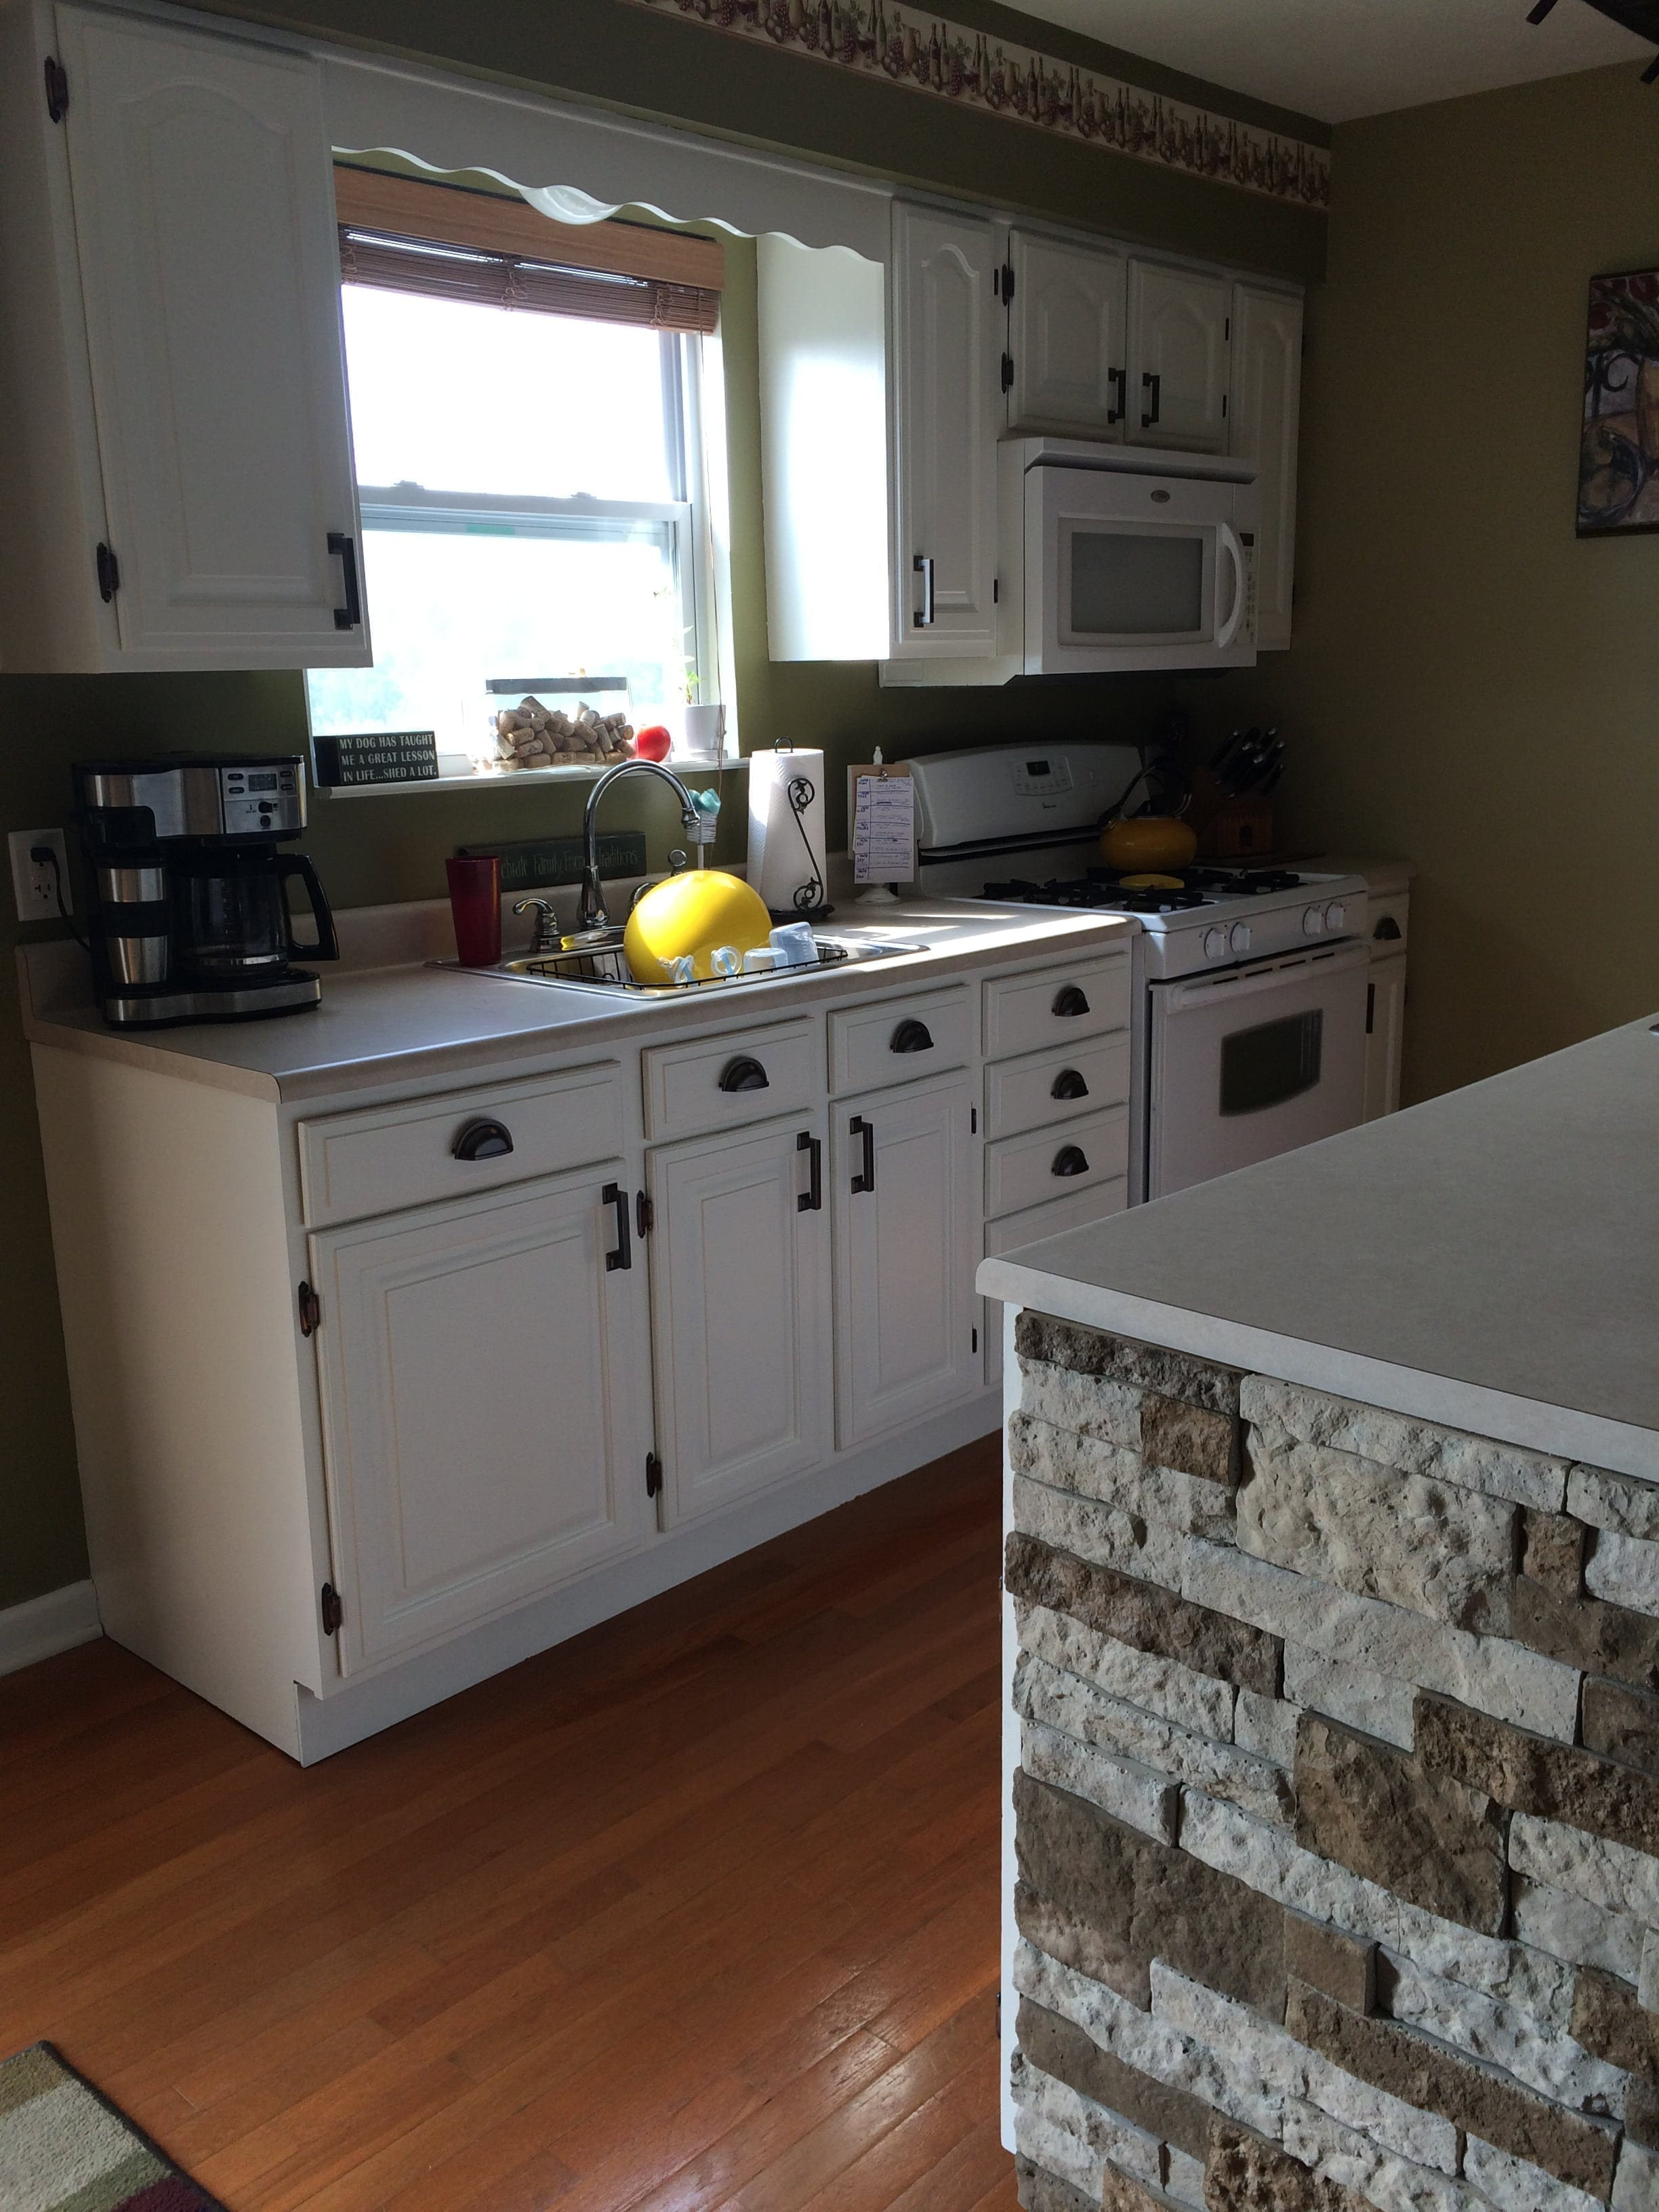 inspirational a re we here of same kitchen is outlet countertop new stone that cabinet the using has photo